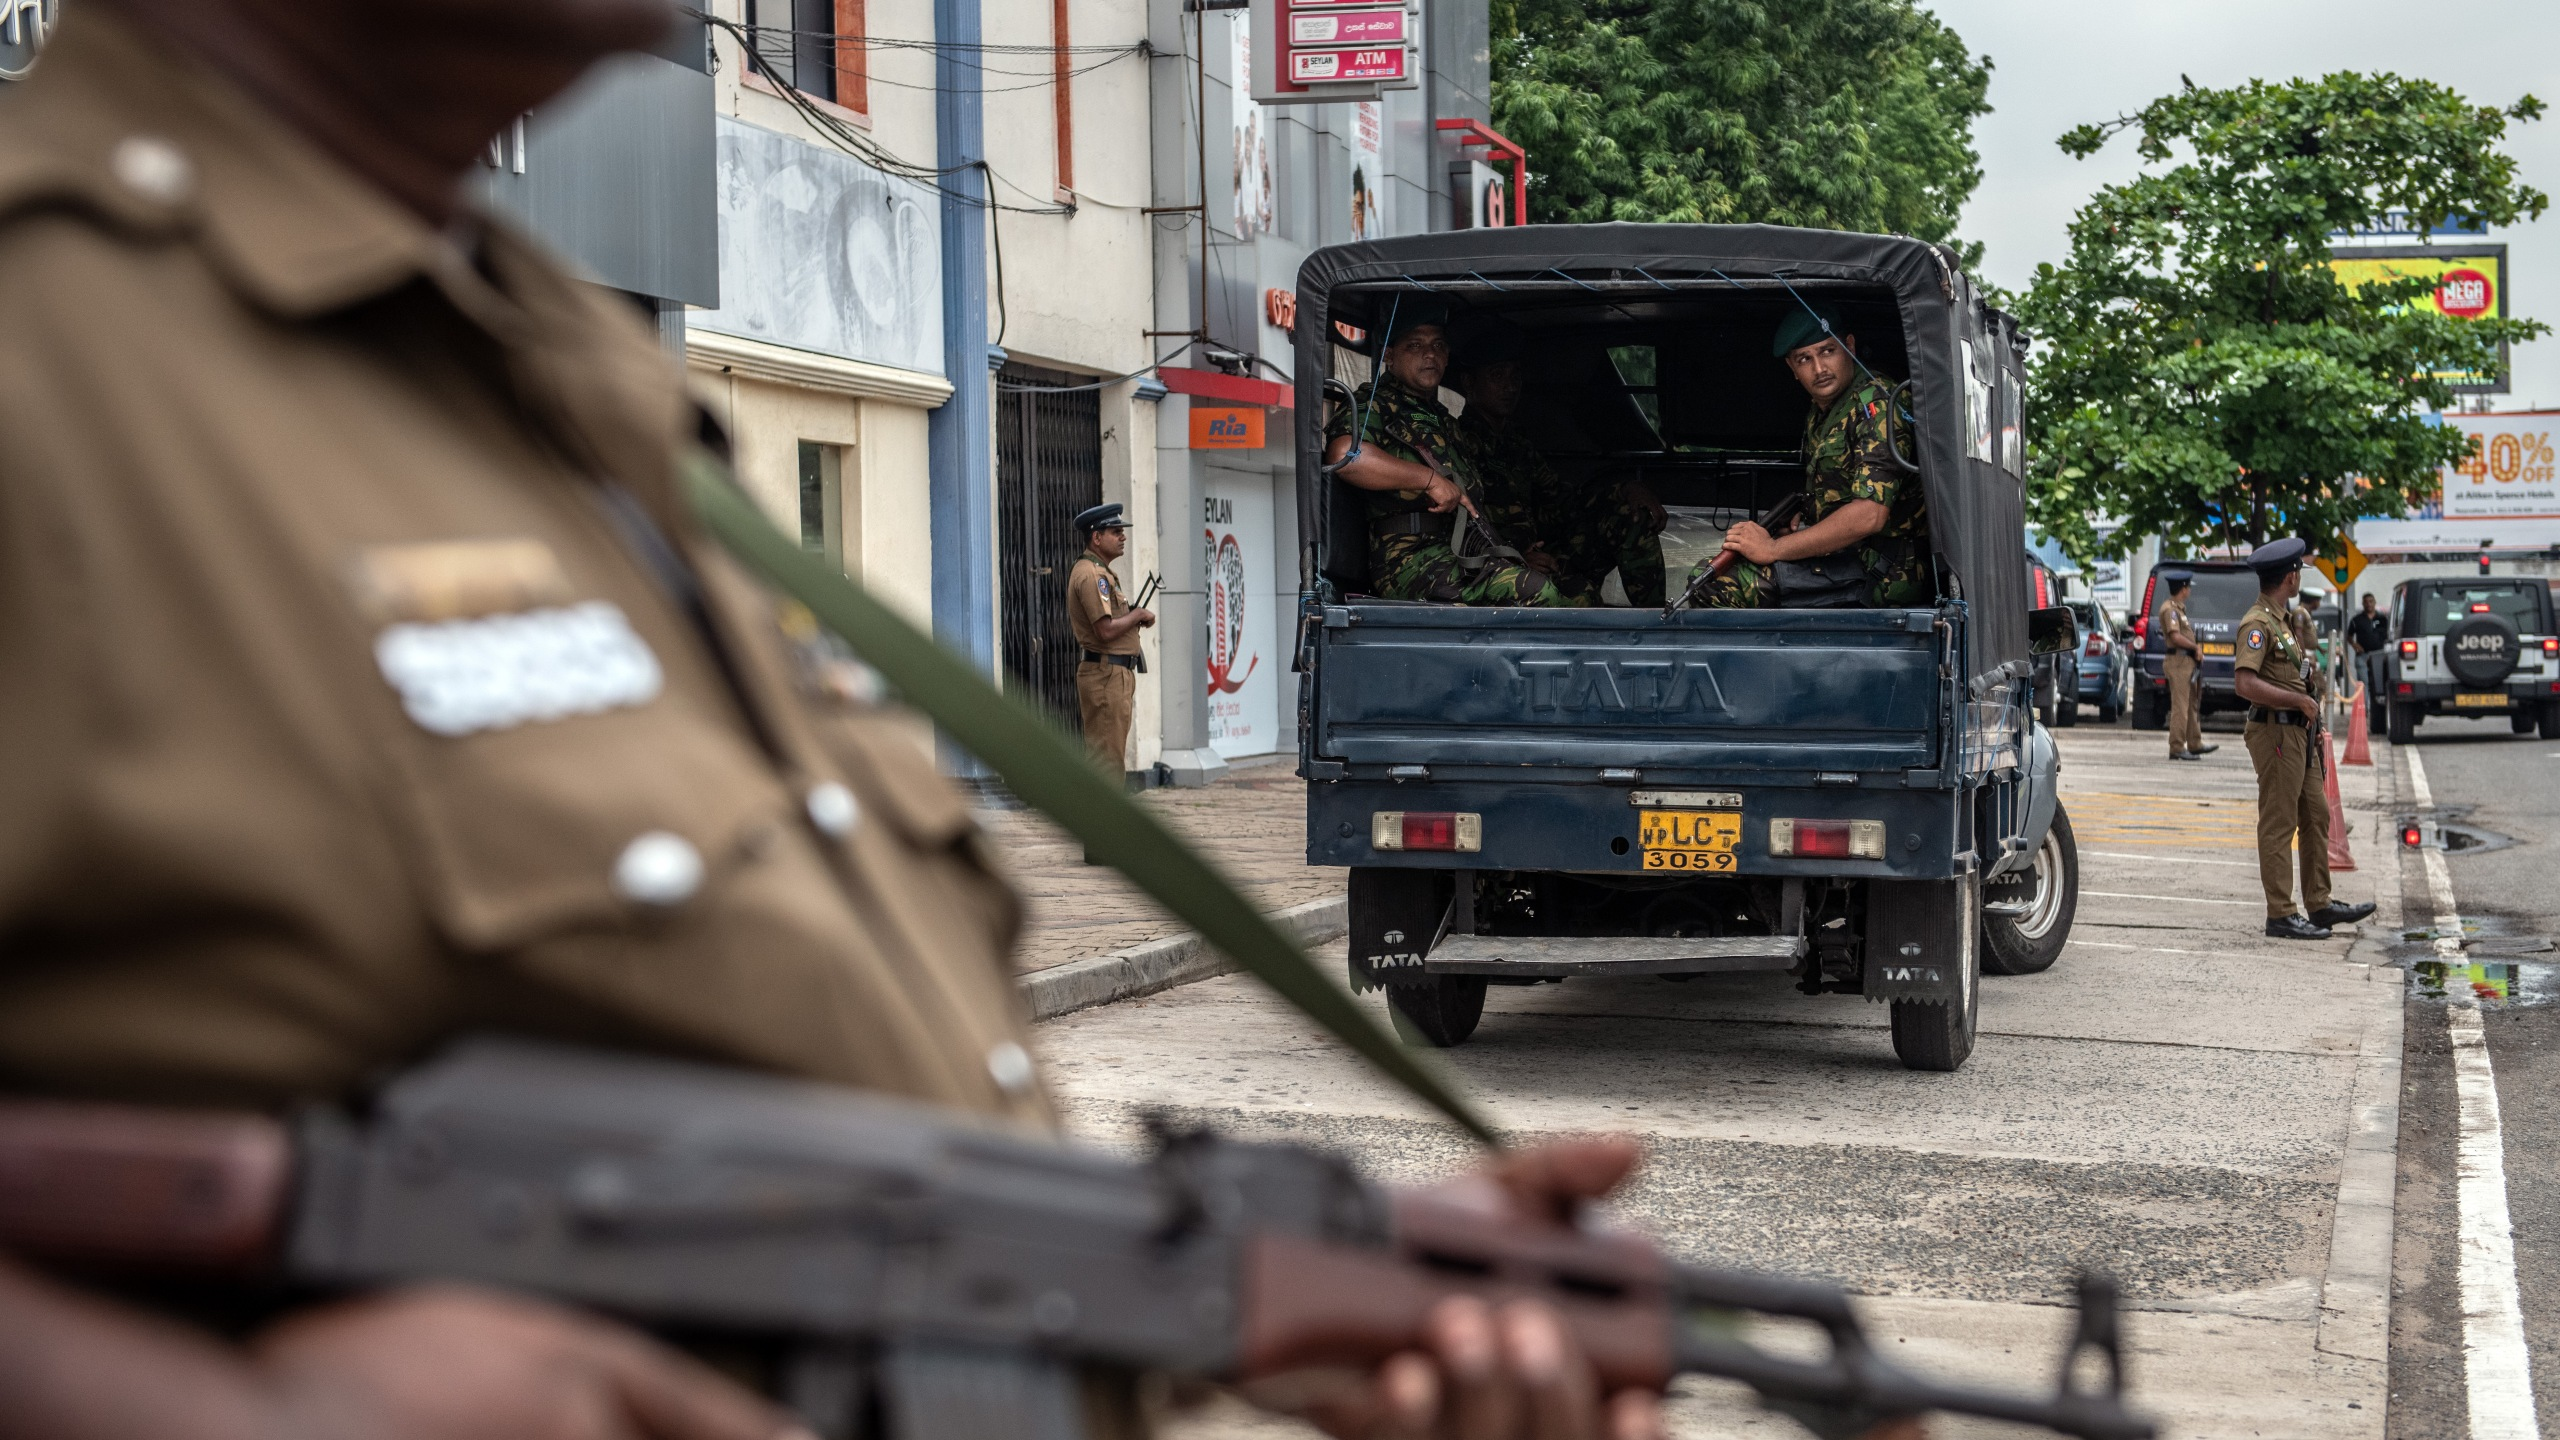 Soldiers and armed police officers guard the area near Dawatagaha Jumma Masjid ahead of Friday prayers on April 26, 2019 in Colombo, Sri Lanka. (Credit: Carl Court/Getty Images)